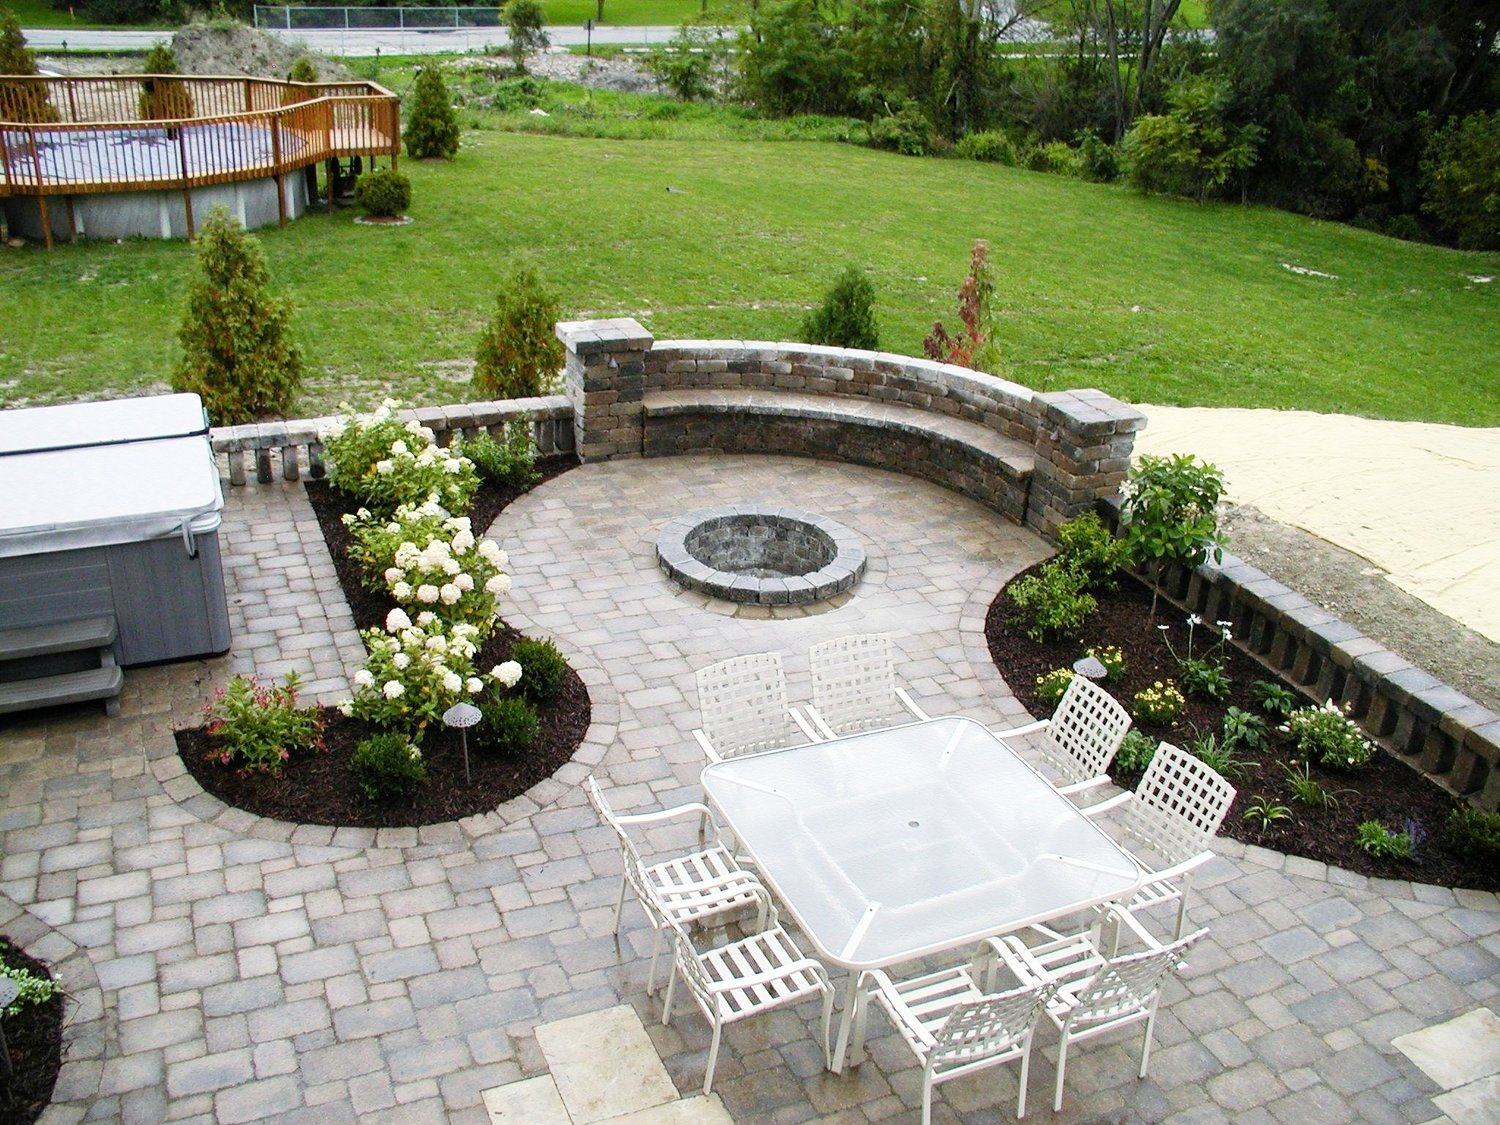 london-ontario-retaining-wall-stone-work-landscaper-07.jpeg